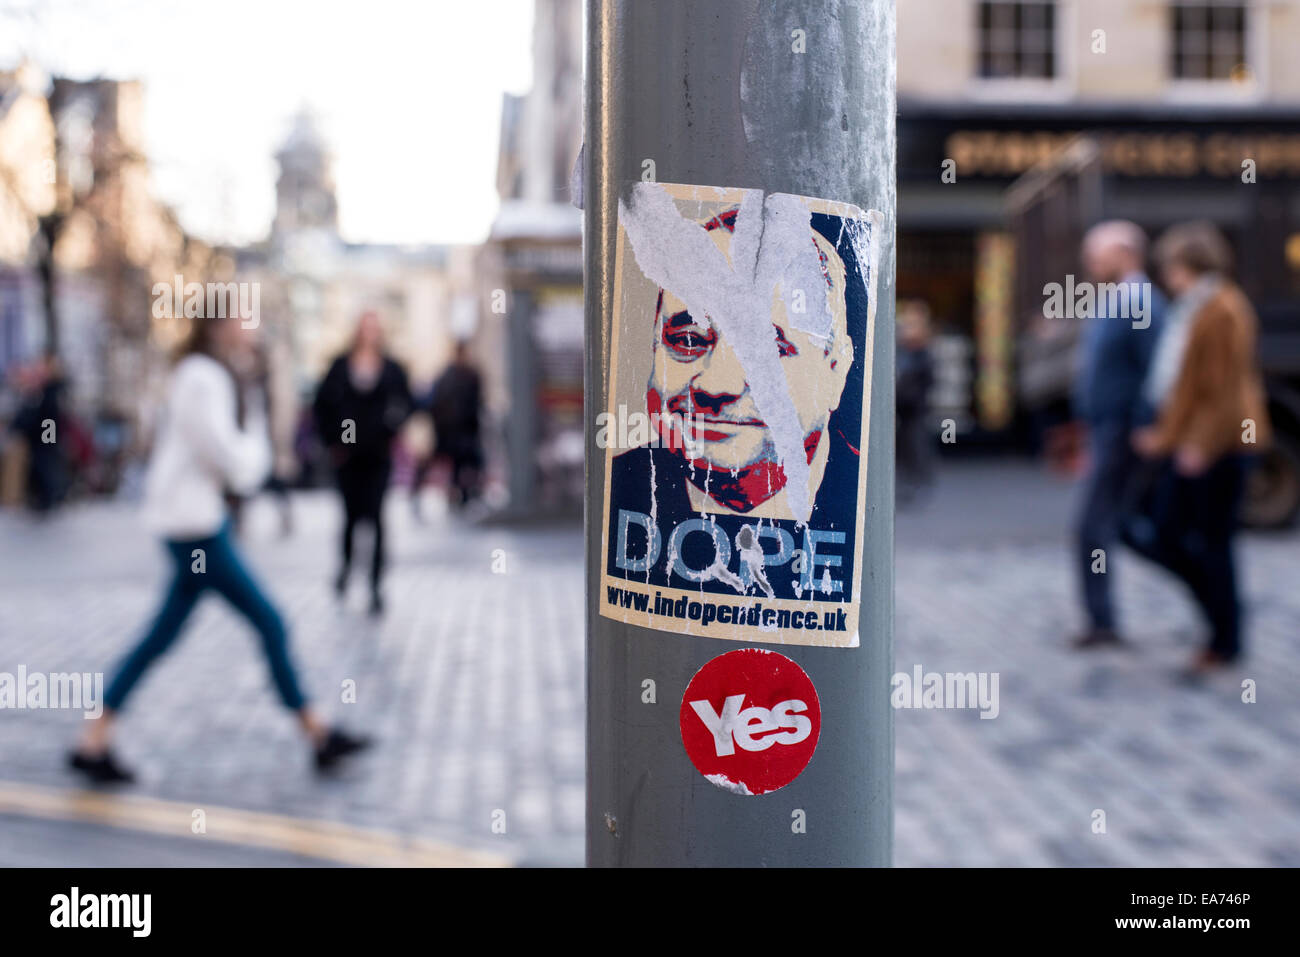 An Alex Salmond 'Dope' sticker, parodying the Obama 'Hope' poster, and a pro-independence 'Yes' , post referendum. Stock Photo